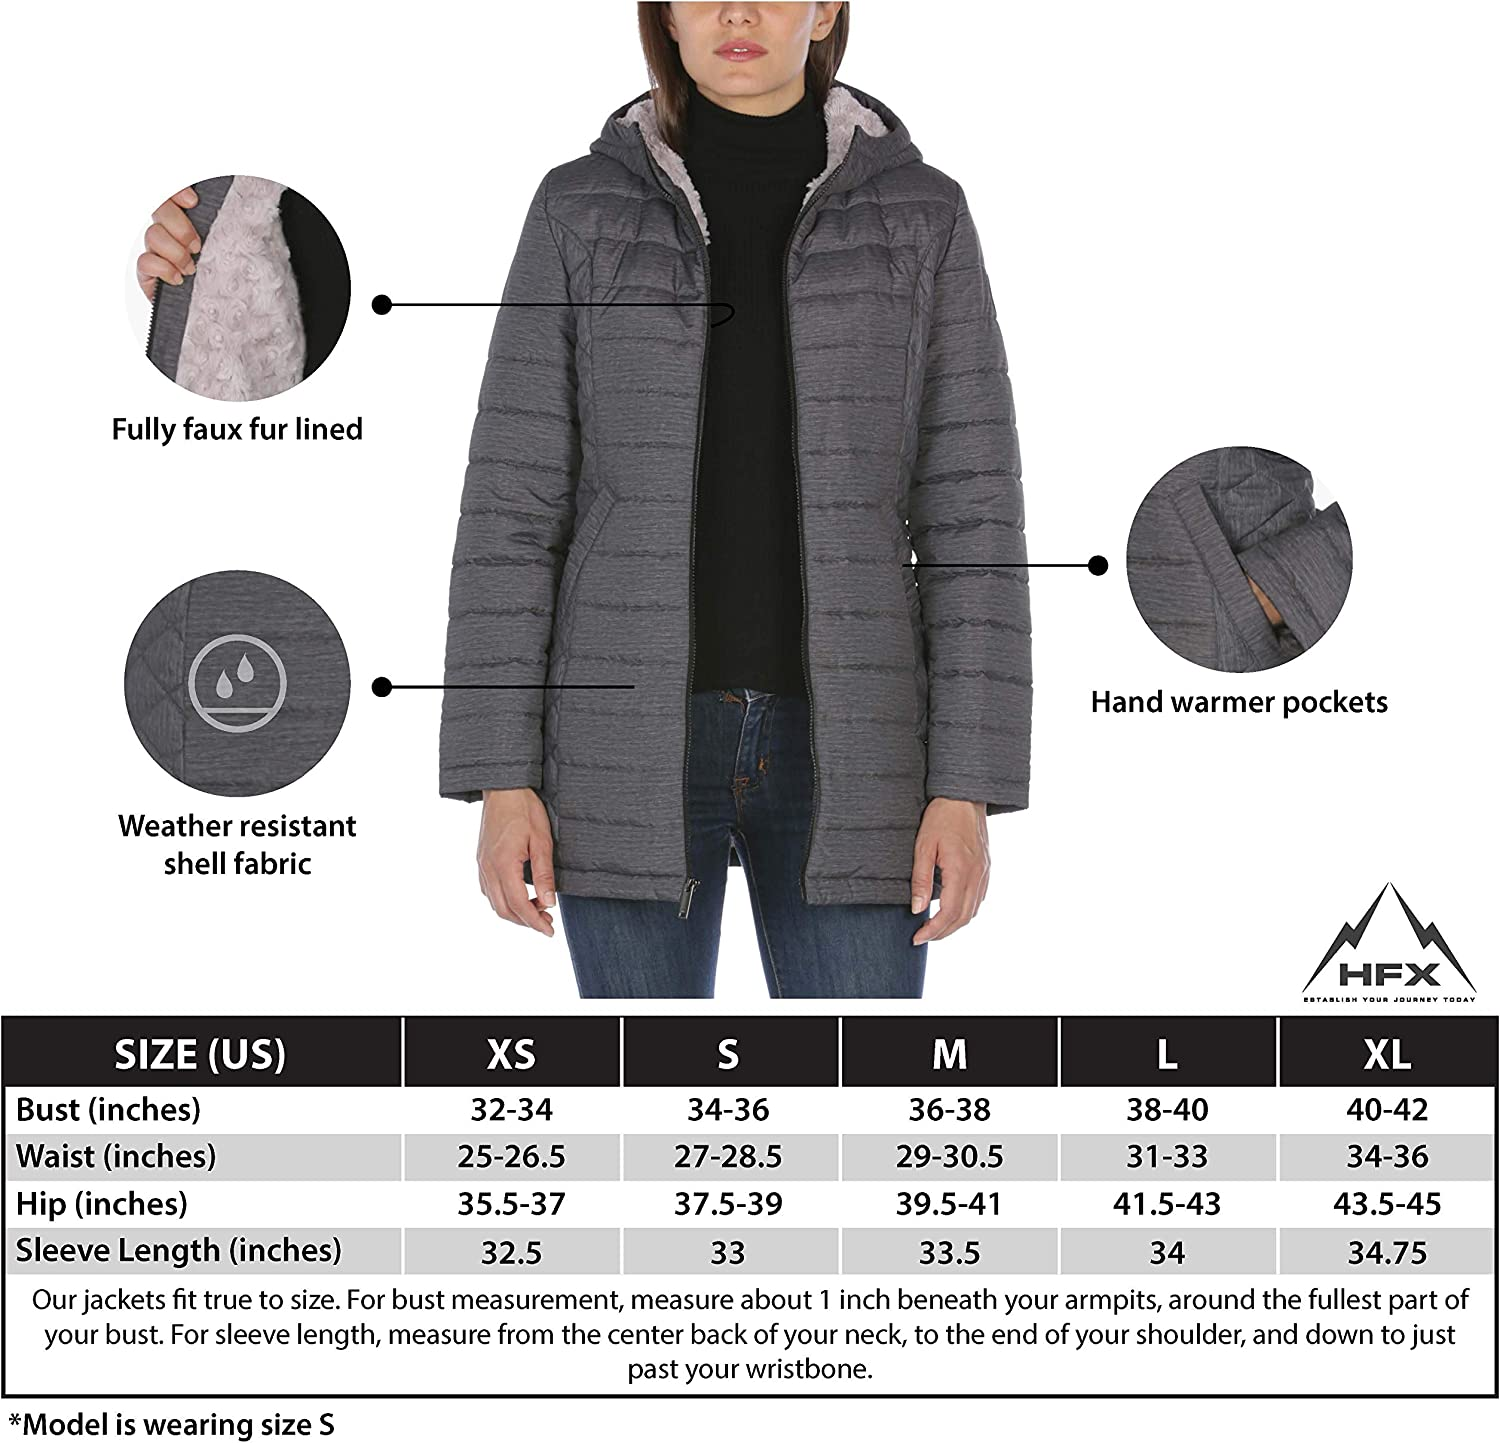 HFX womens 3//4 Length Fully Sherpa Lined Jacket